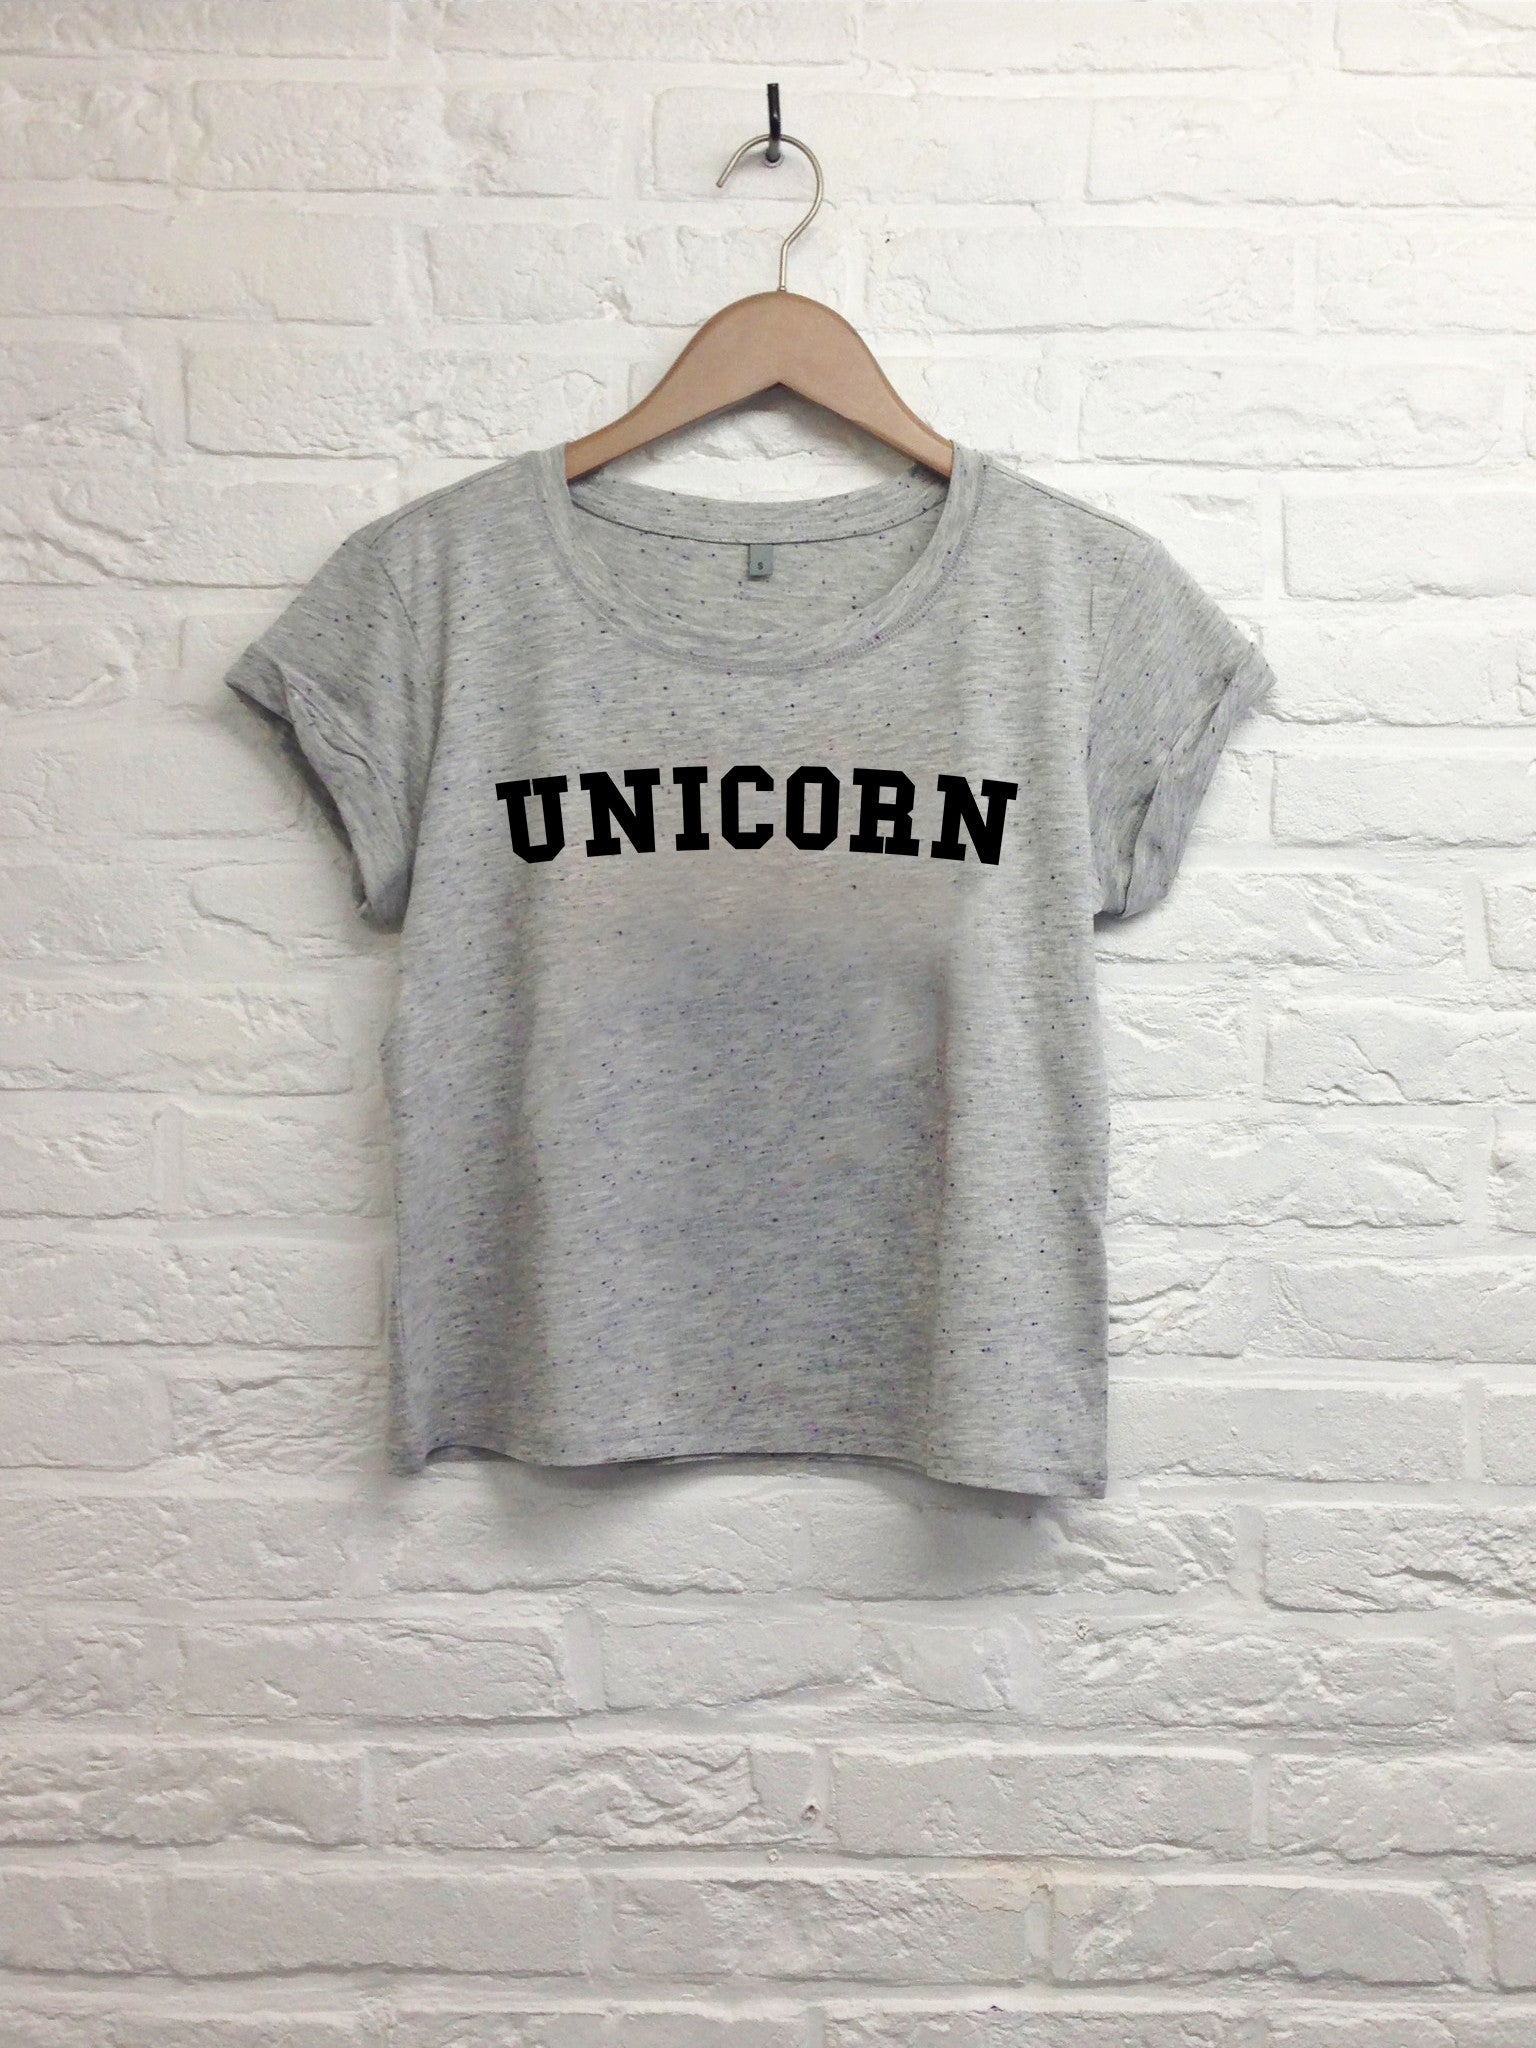 Unicorn - Crop Top speckled Grey-T shirt-Atelier Amelot